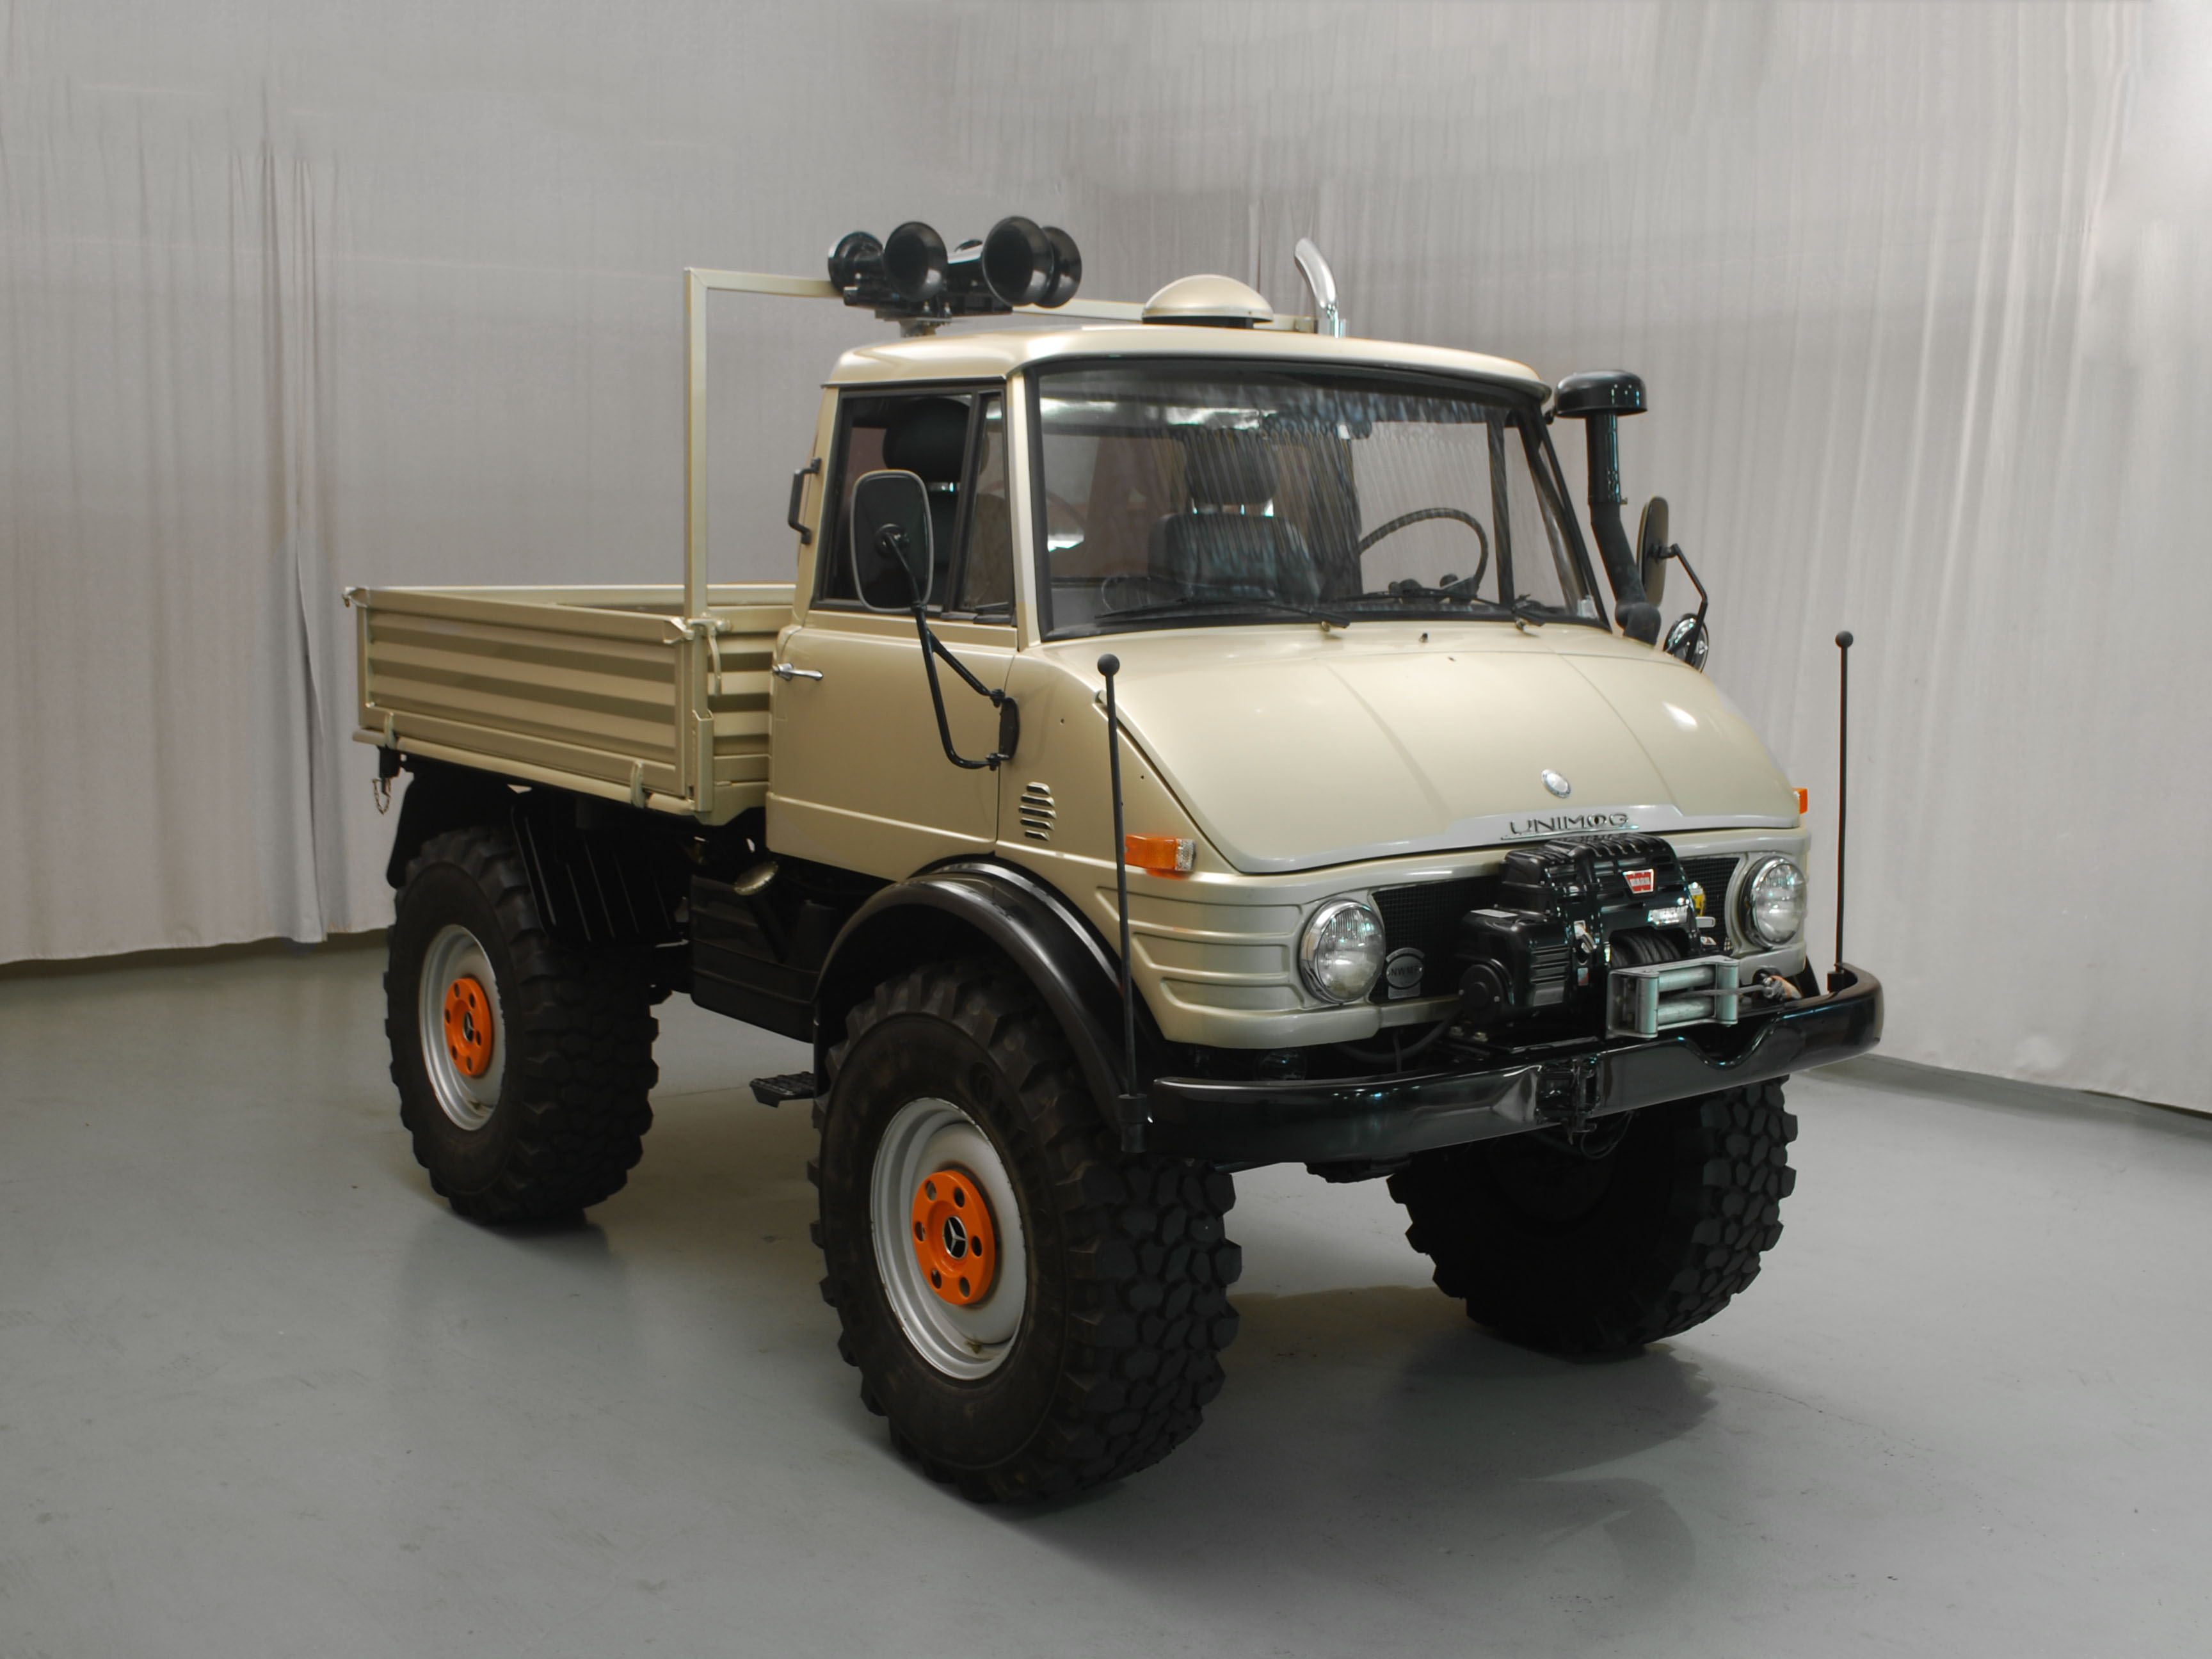 Mercedes unimog for sale usa autos post for Mercedes benz unimog for sale usa